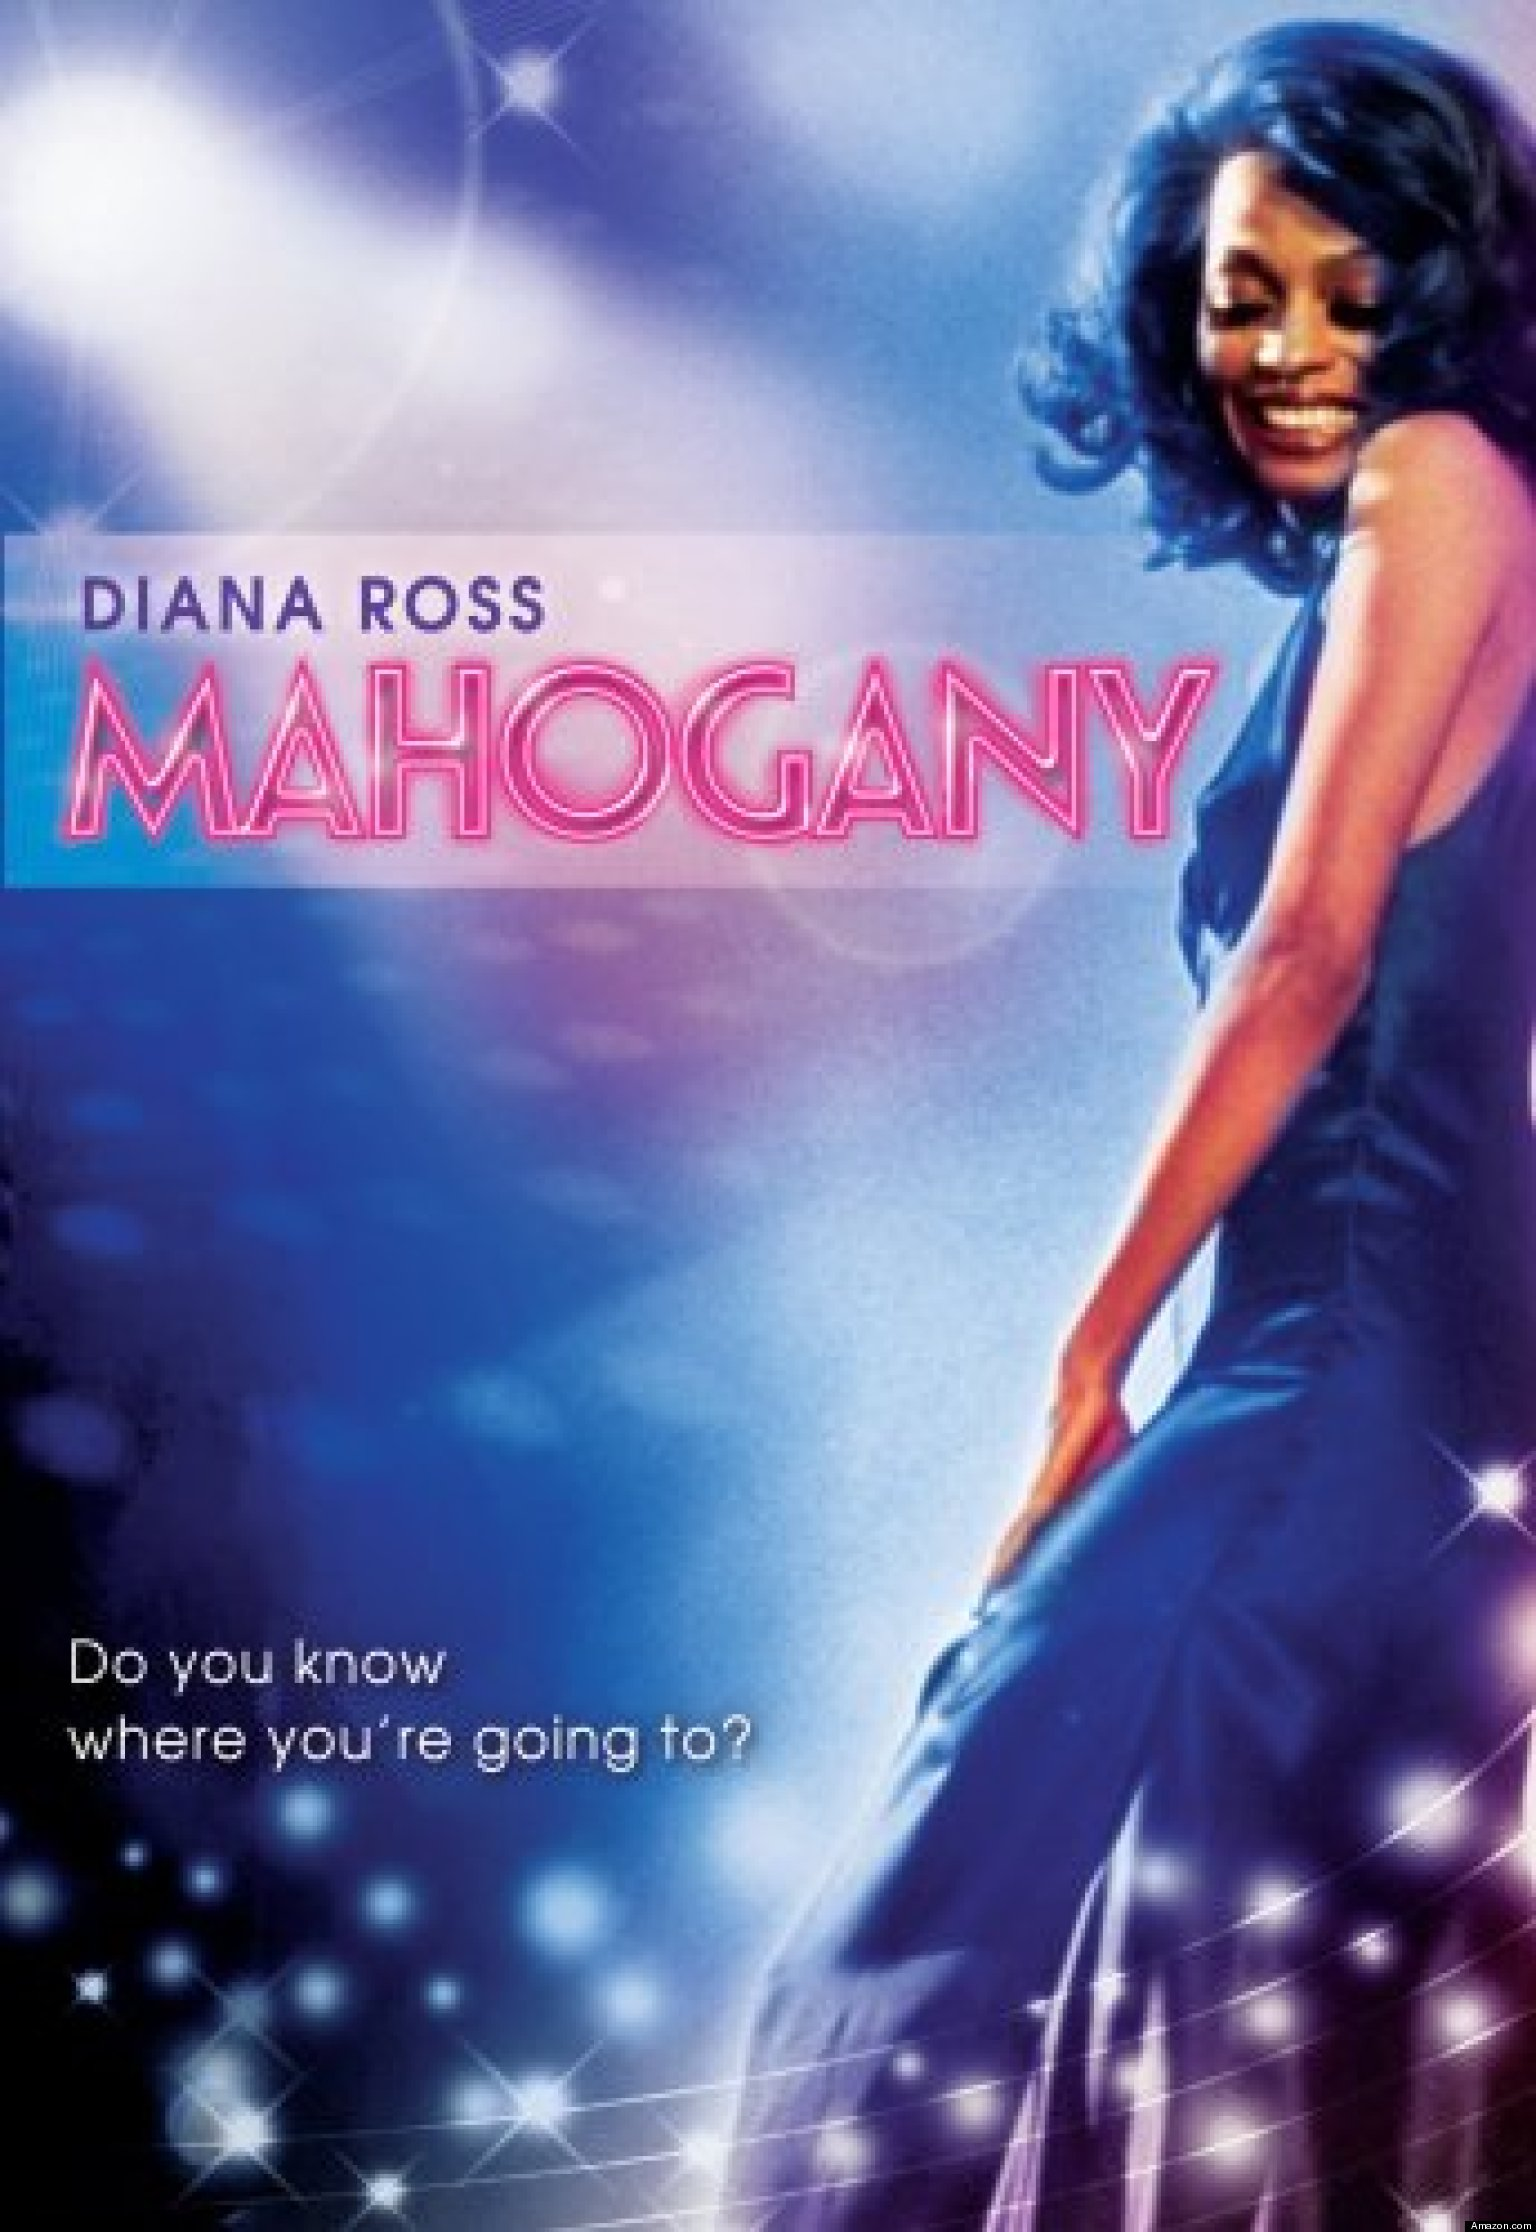 'Mahogany' Remake On Deck From Suzanne de Passe | HuffPost